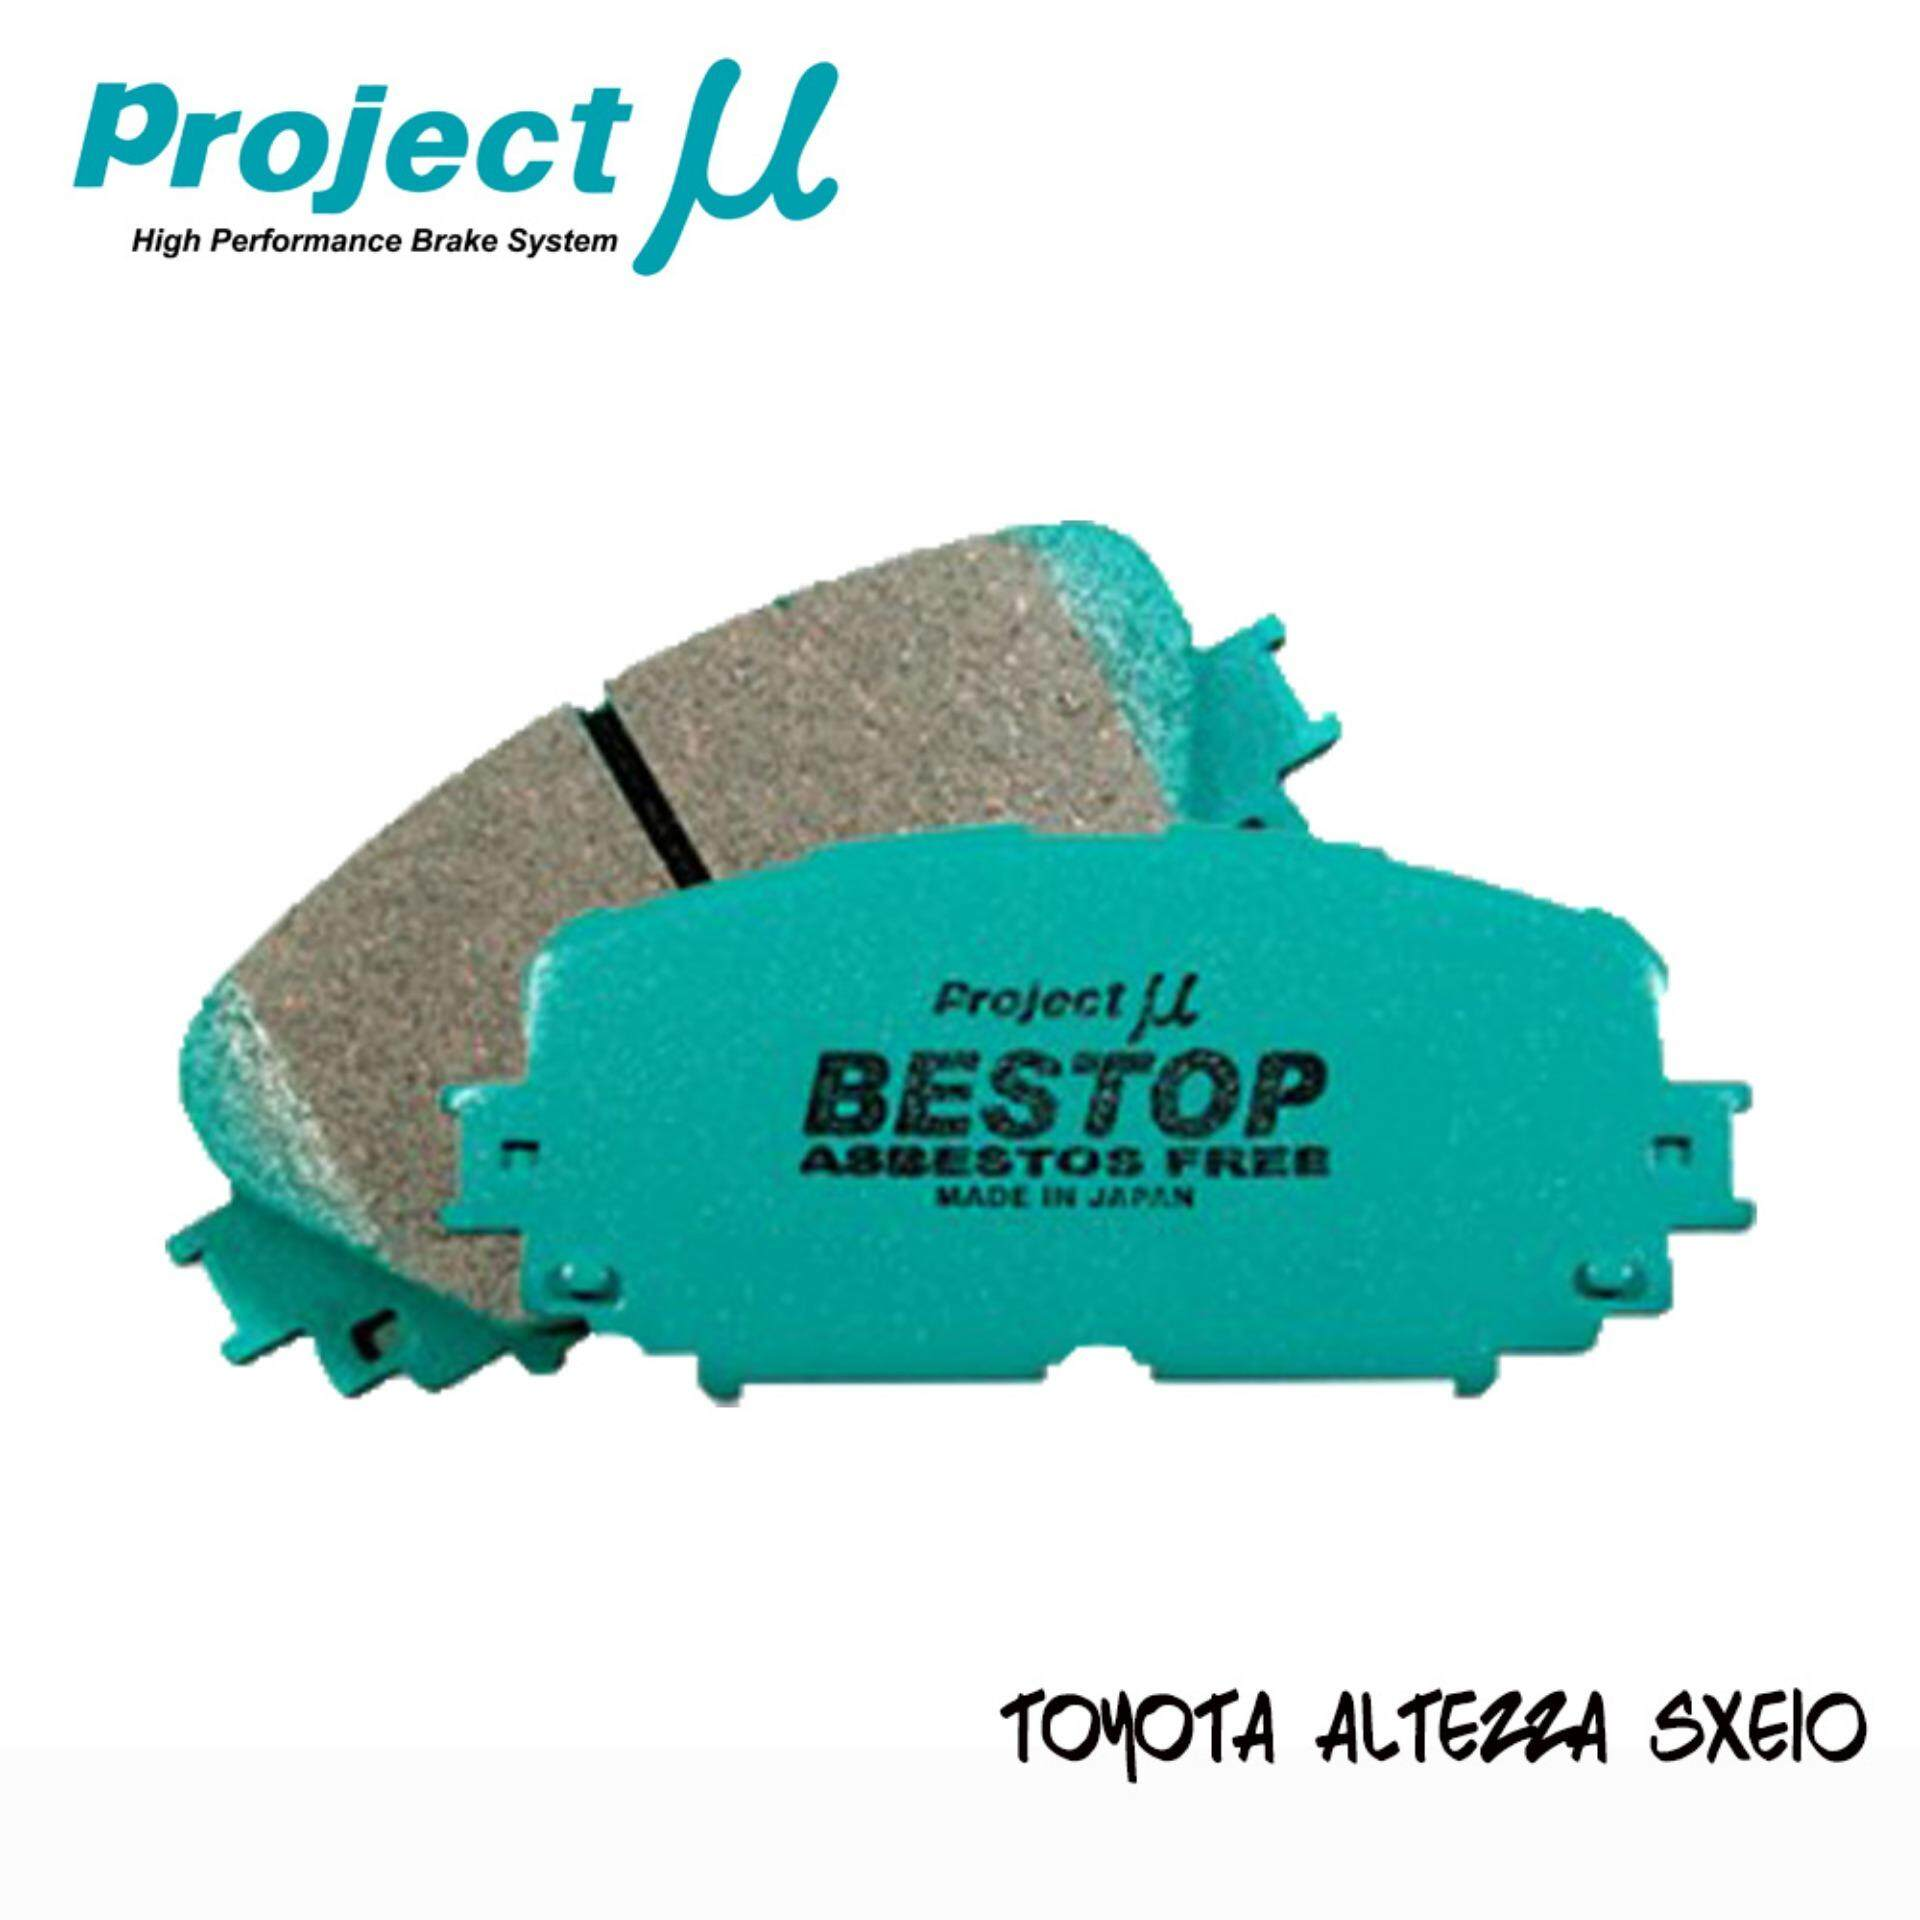 PROJECT MU BESTOP - TOYOTA ALTEZZA SXE10 BRAKE PAD F175